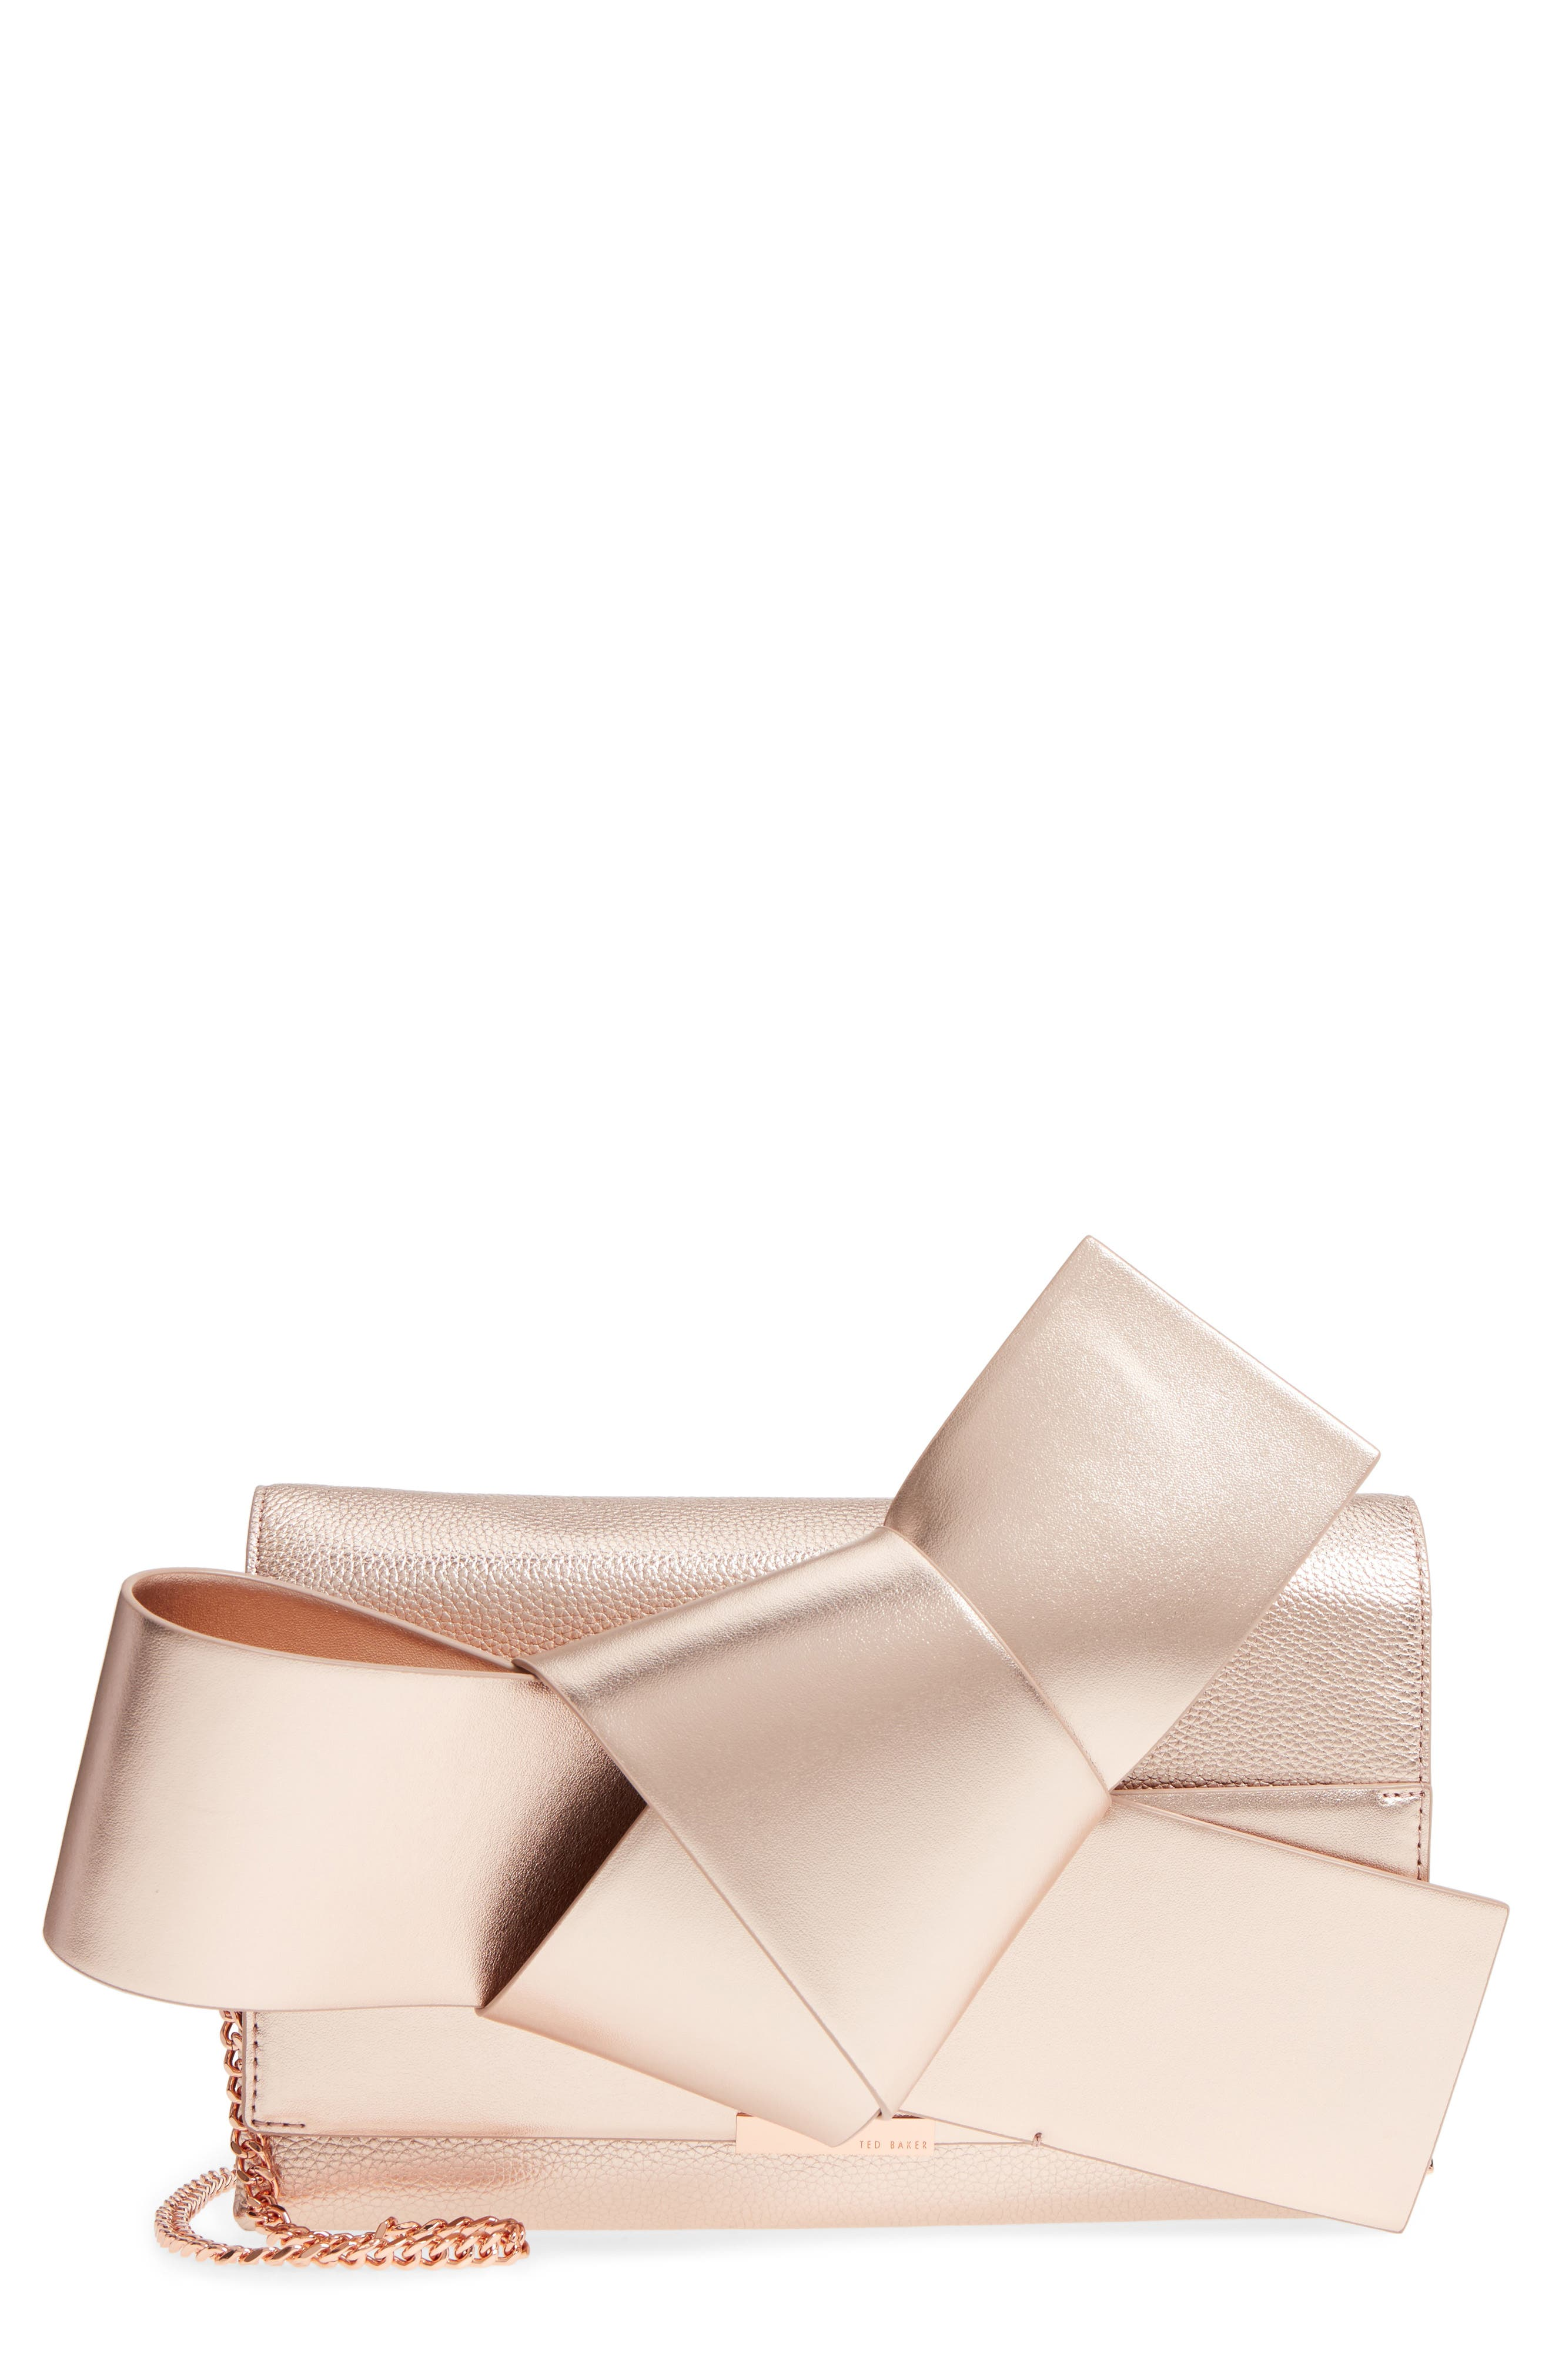 Knotted Bow Leather Clutch,                             Main thumbnail 1, color,                             Rose Gold